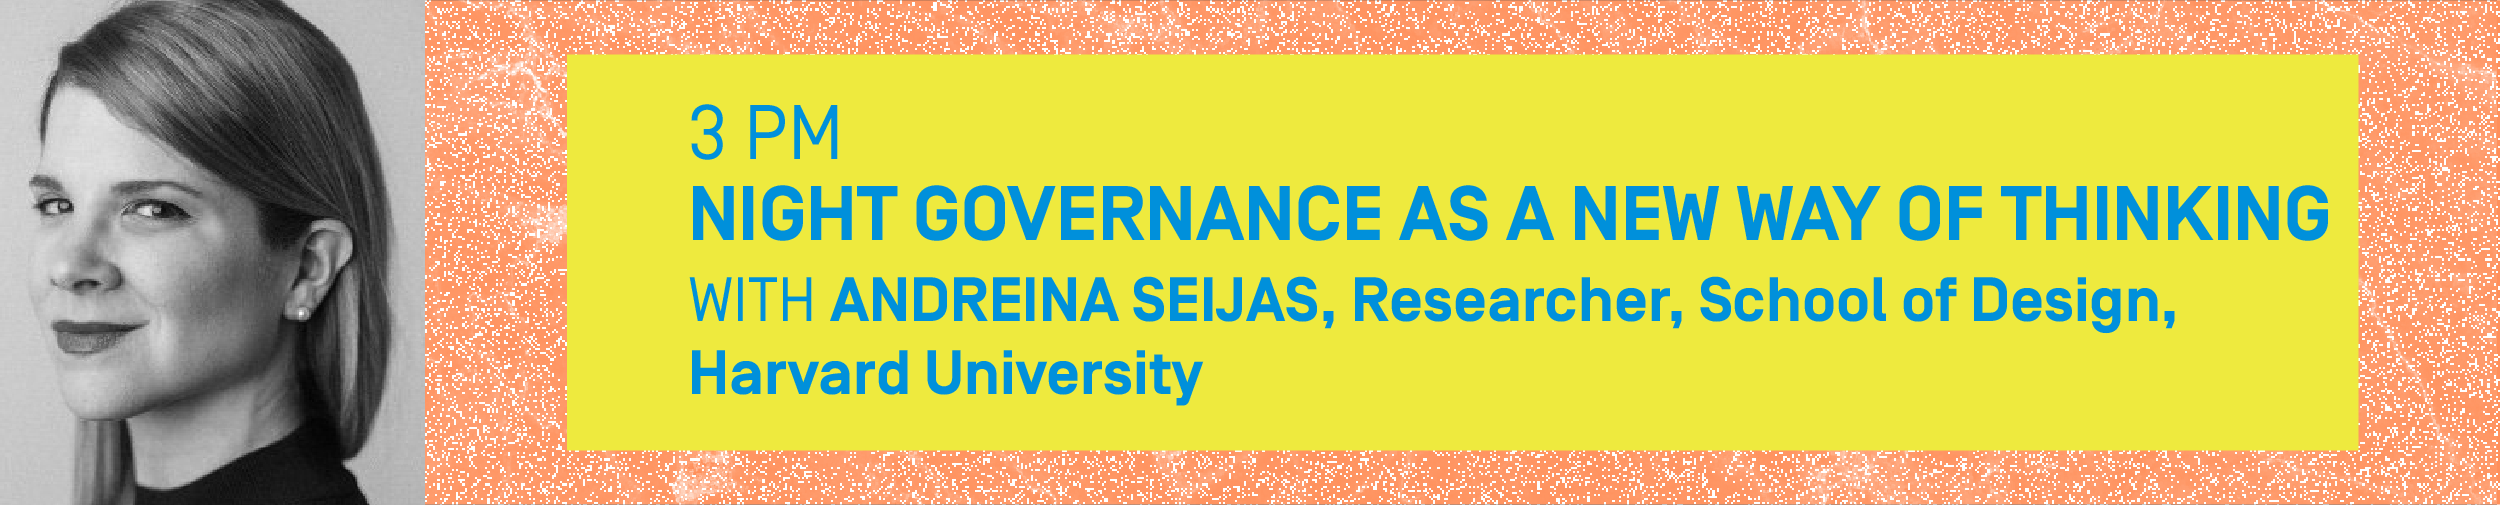 3PM – NIGHT GOVERNANCE AS A NEW WAY OF THINKING With ANDREINA SEIJAS, Researcher, School of Design, Harvard University